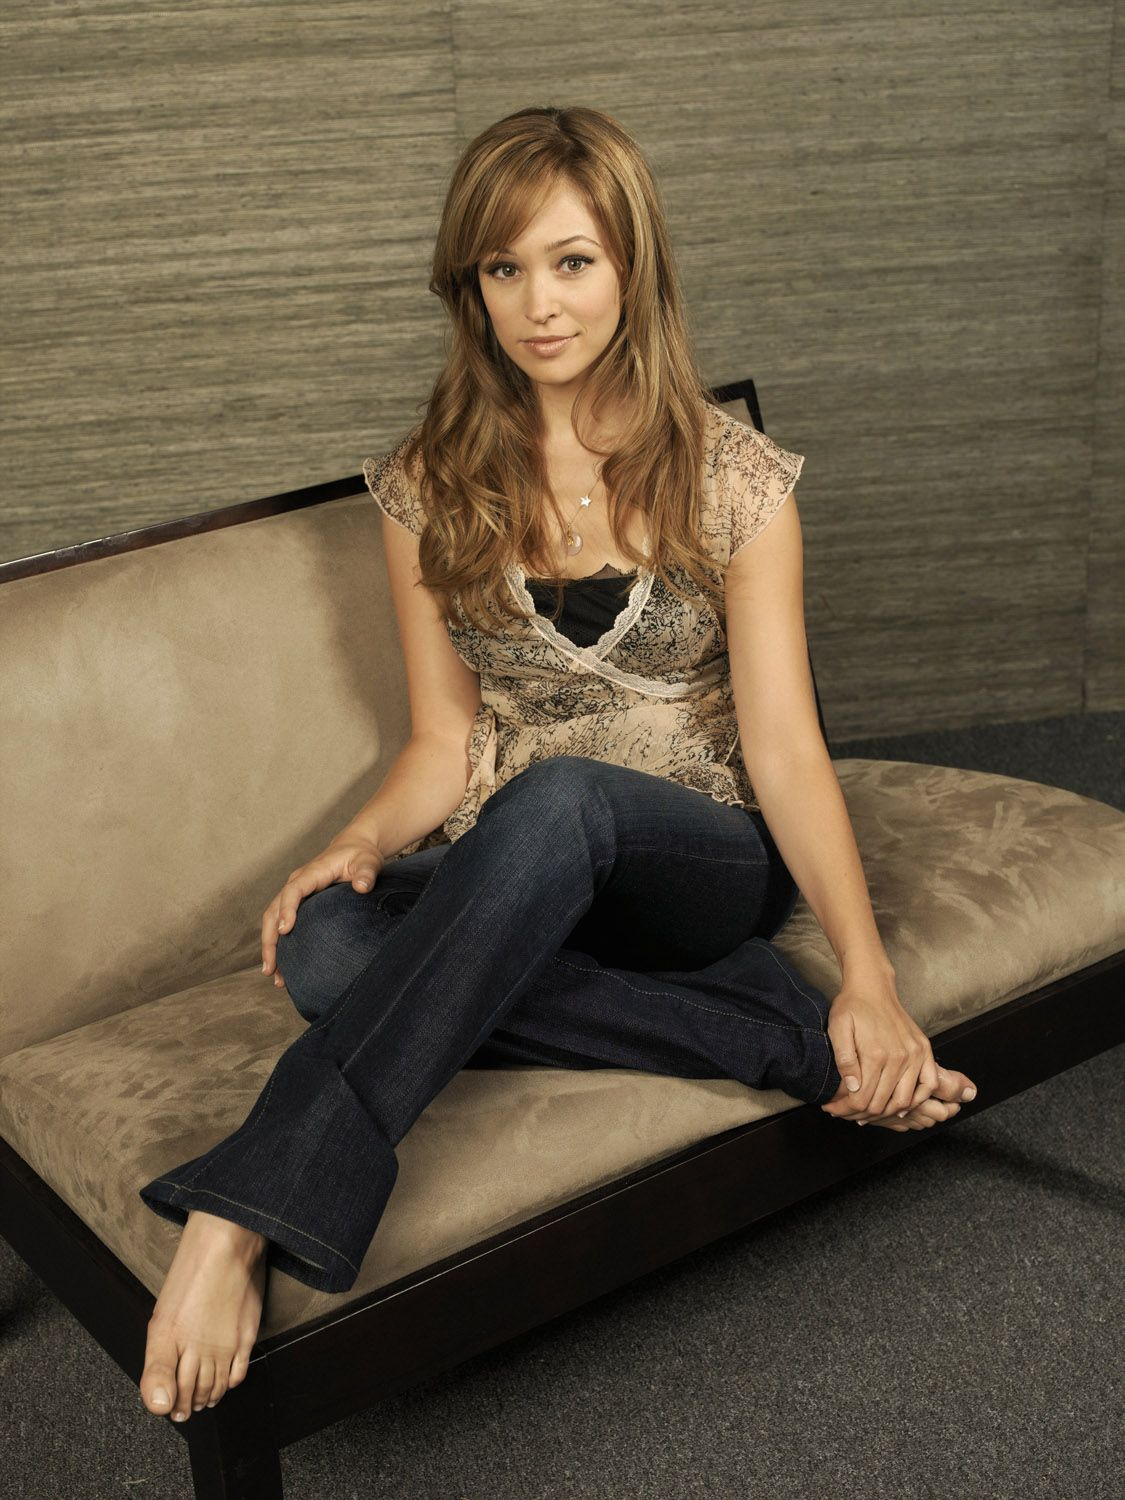 autumn reeser entourage